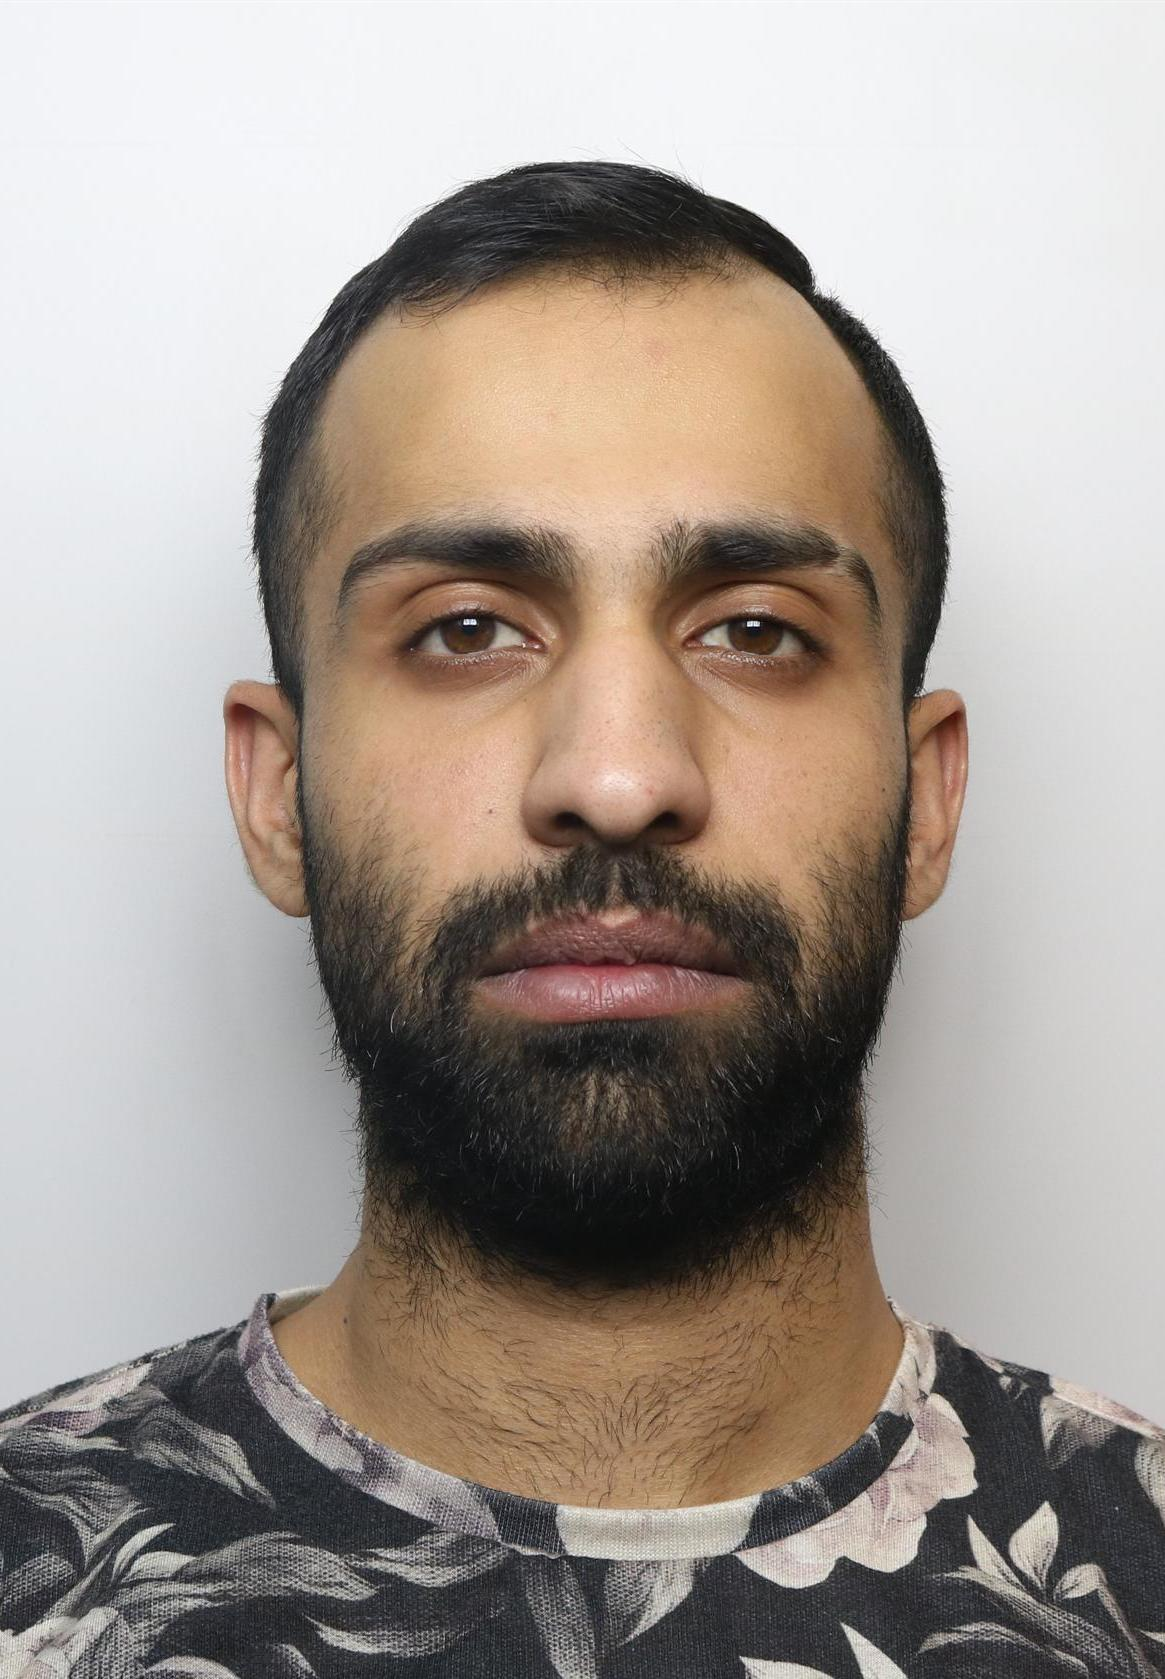 Shaan Ali, 23, who was sentenced to 40 months in prison for street-dealing heroin and cocaine in Bradford